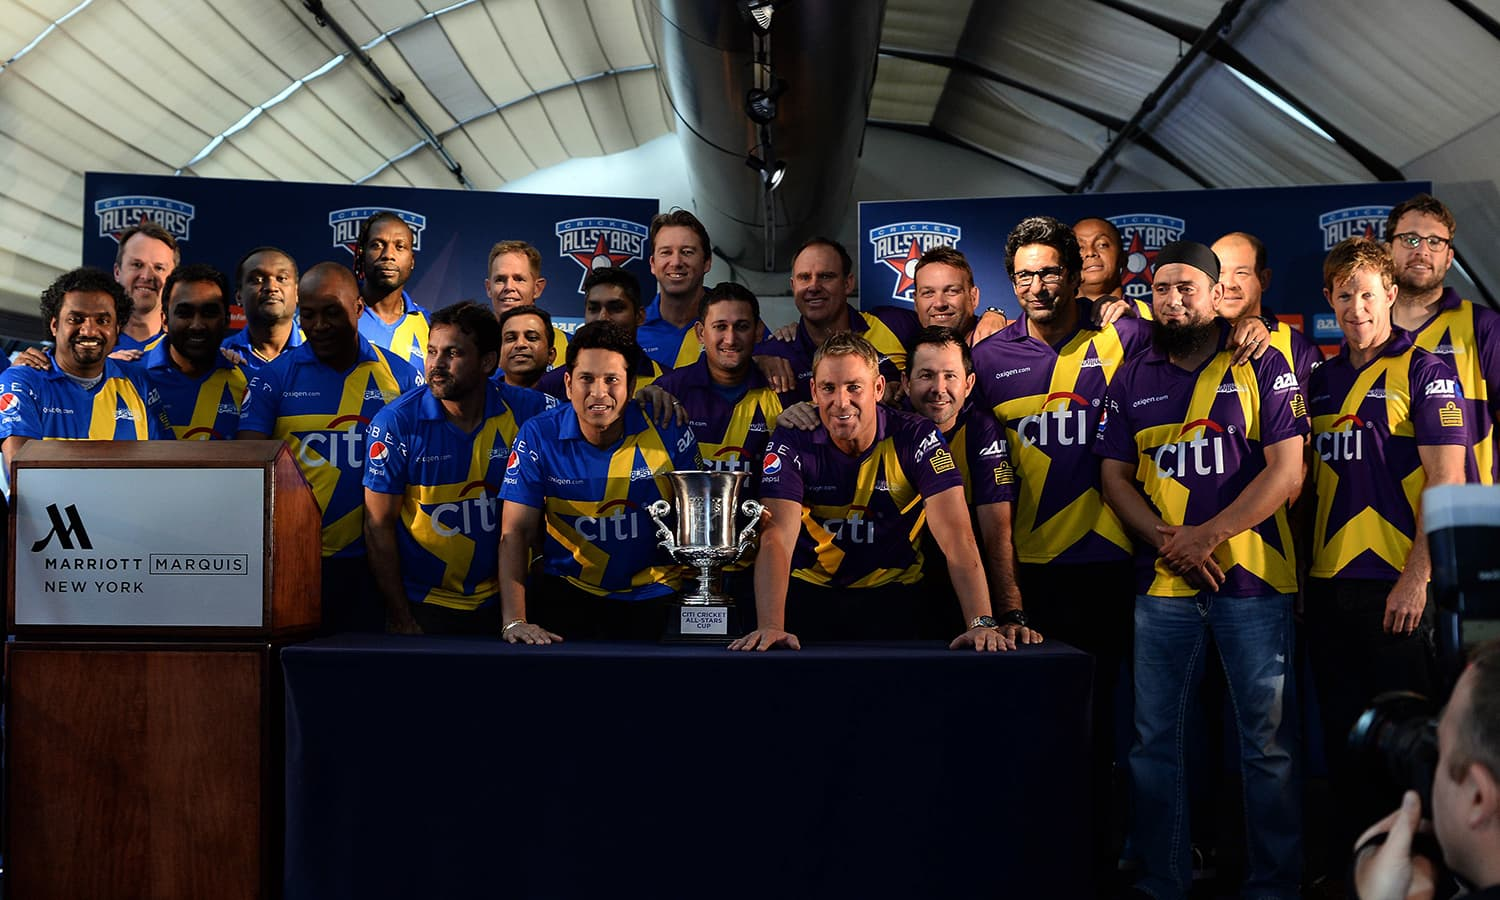 """Retired Indian cricketer Sachin Tendulkar (C-L) and Australian Shane Warne (C-R) and their their teammates pose with the trophy during a press conference in New York on November 5, 2015. Tendulkar and Warne will lead a lineup of renowned cricket players from around the world in the inaugural """"Cricket All-Stars,"""" a three-game series to be played in Major League Baseball stadiums in New York , Houston and Los Angeles, to promote cricket the US. AFP PHOTO/JEWEL SAMAD"""